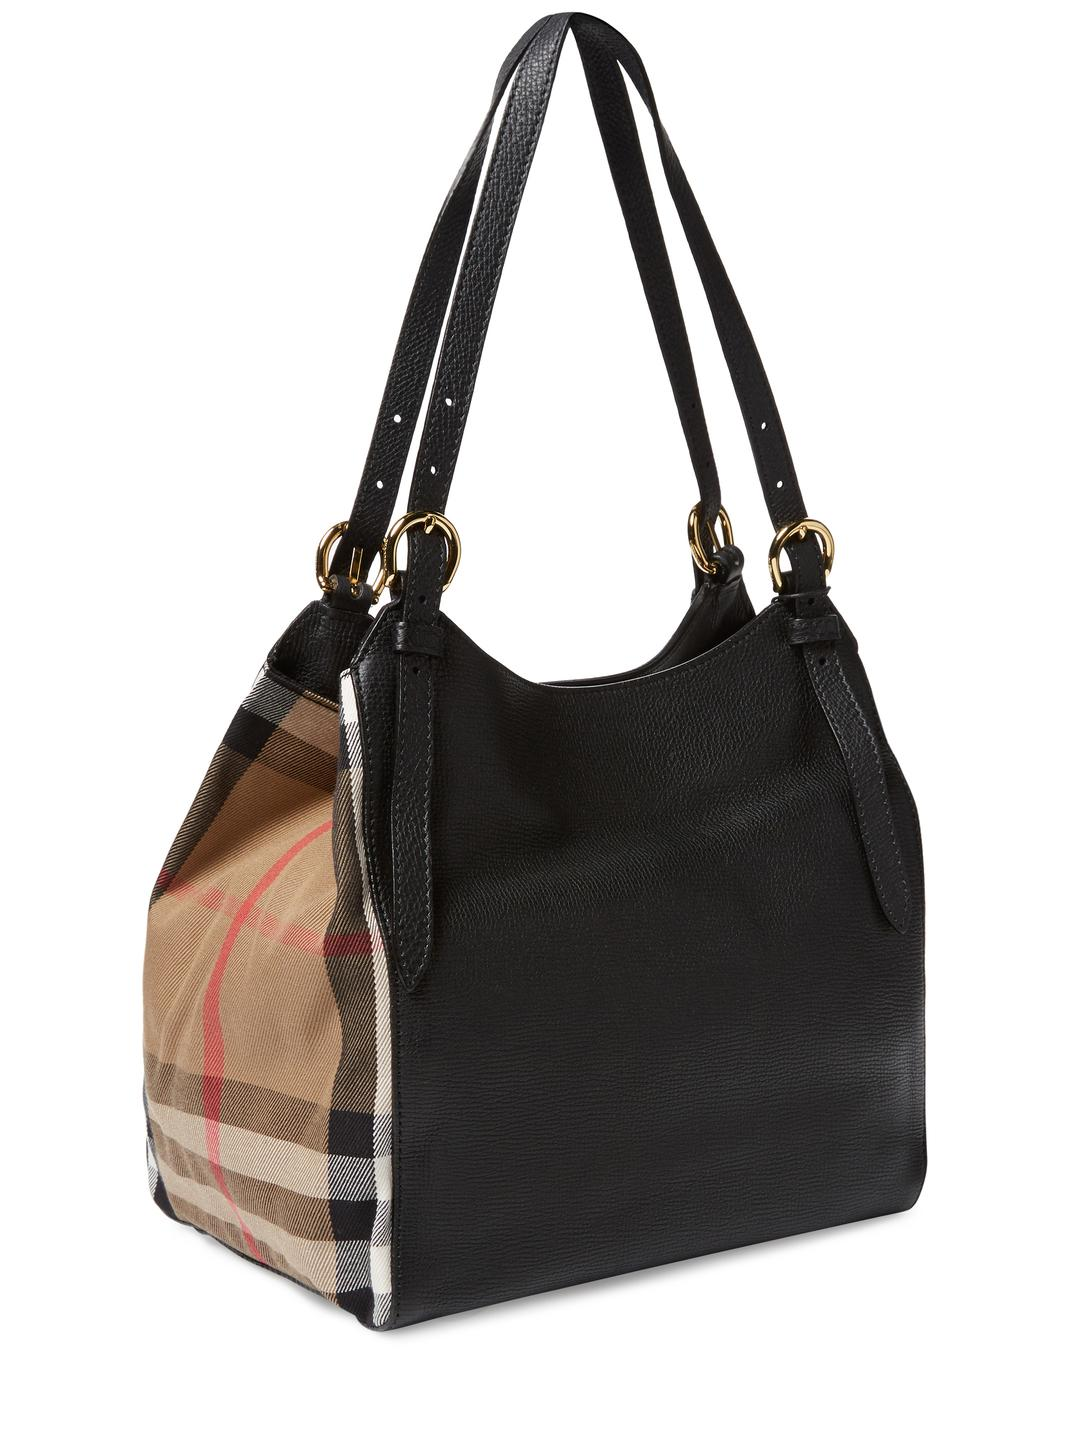 7be6532d6d26 Lyst - Burberry Small Canter Leather   House Check Tote in Black